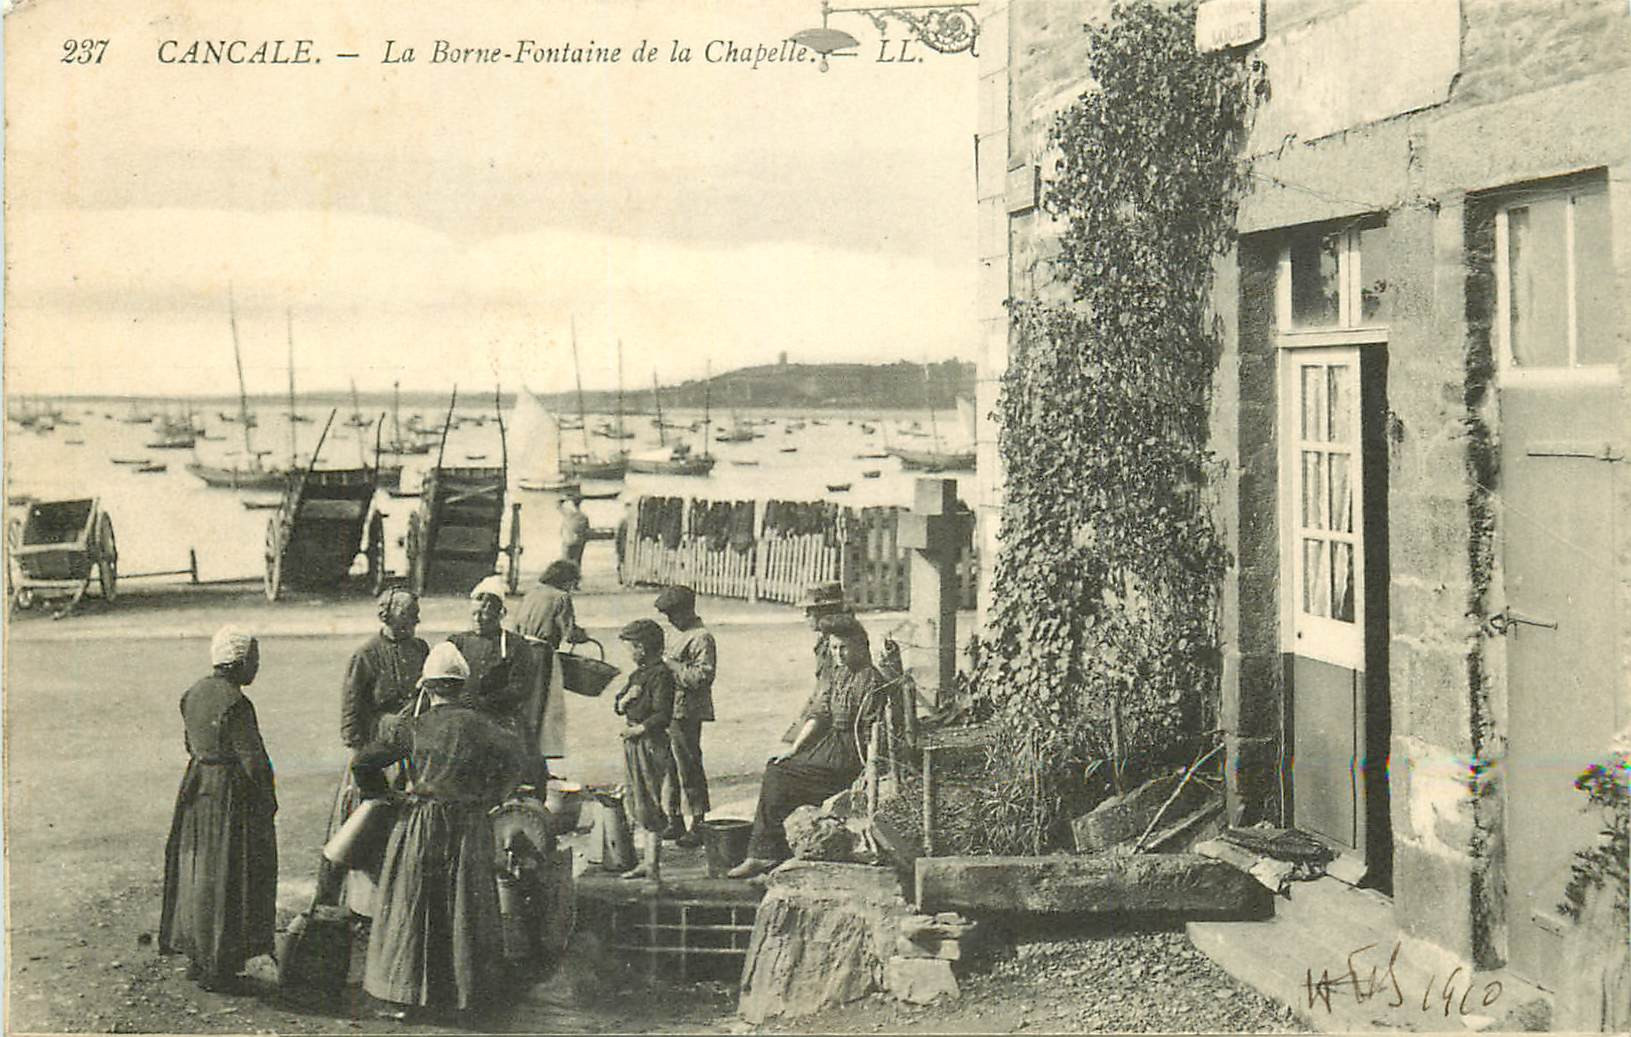 WW 35 CANCALE. La Borne-Fontaine de la Chapelle 1910